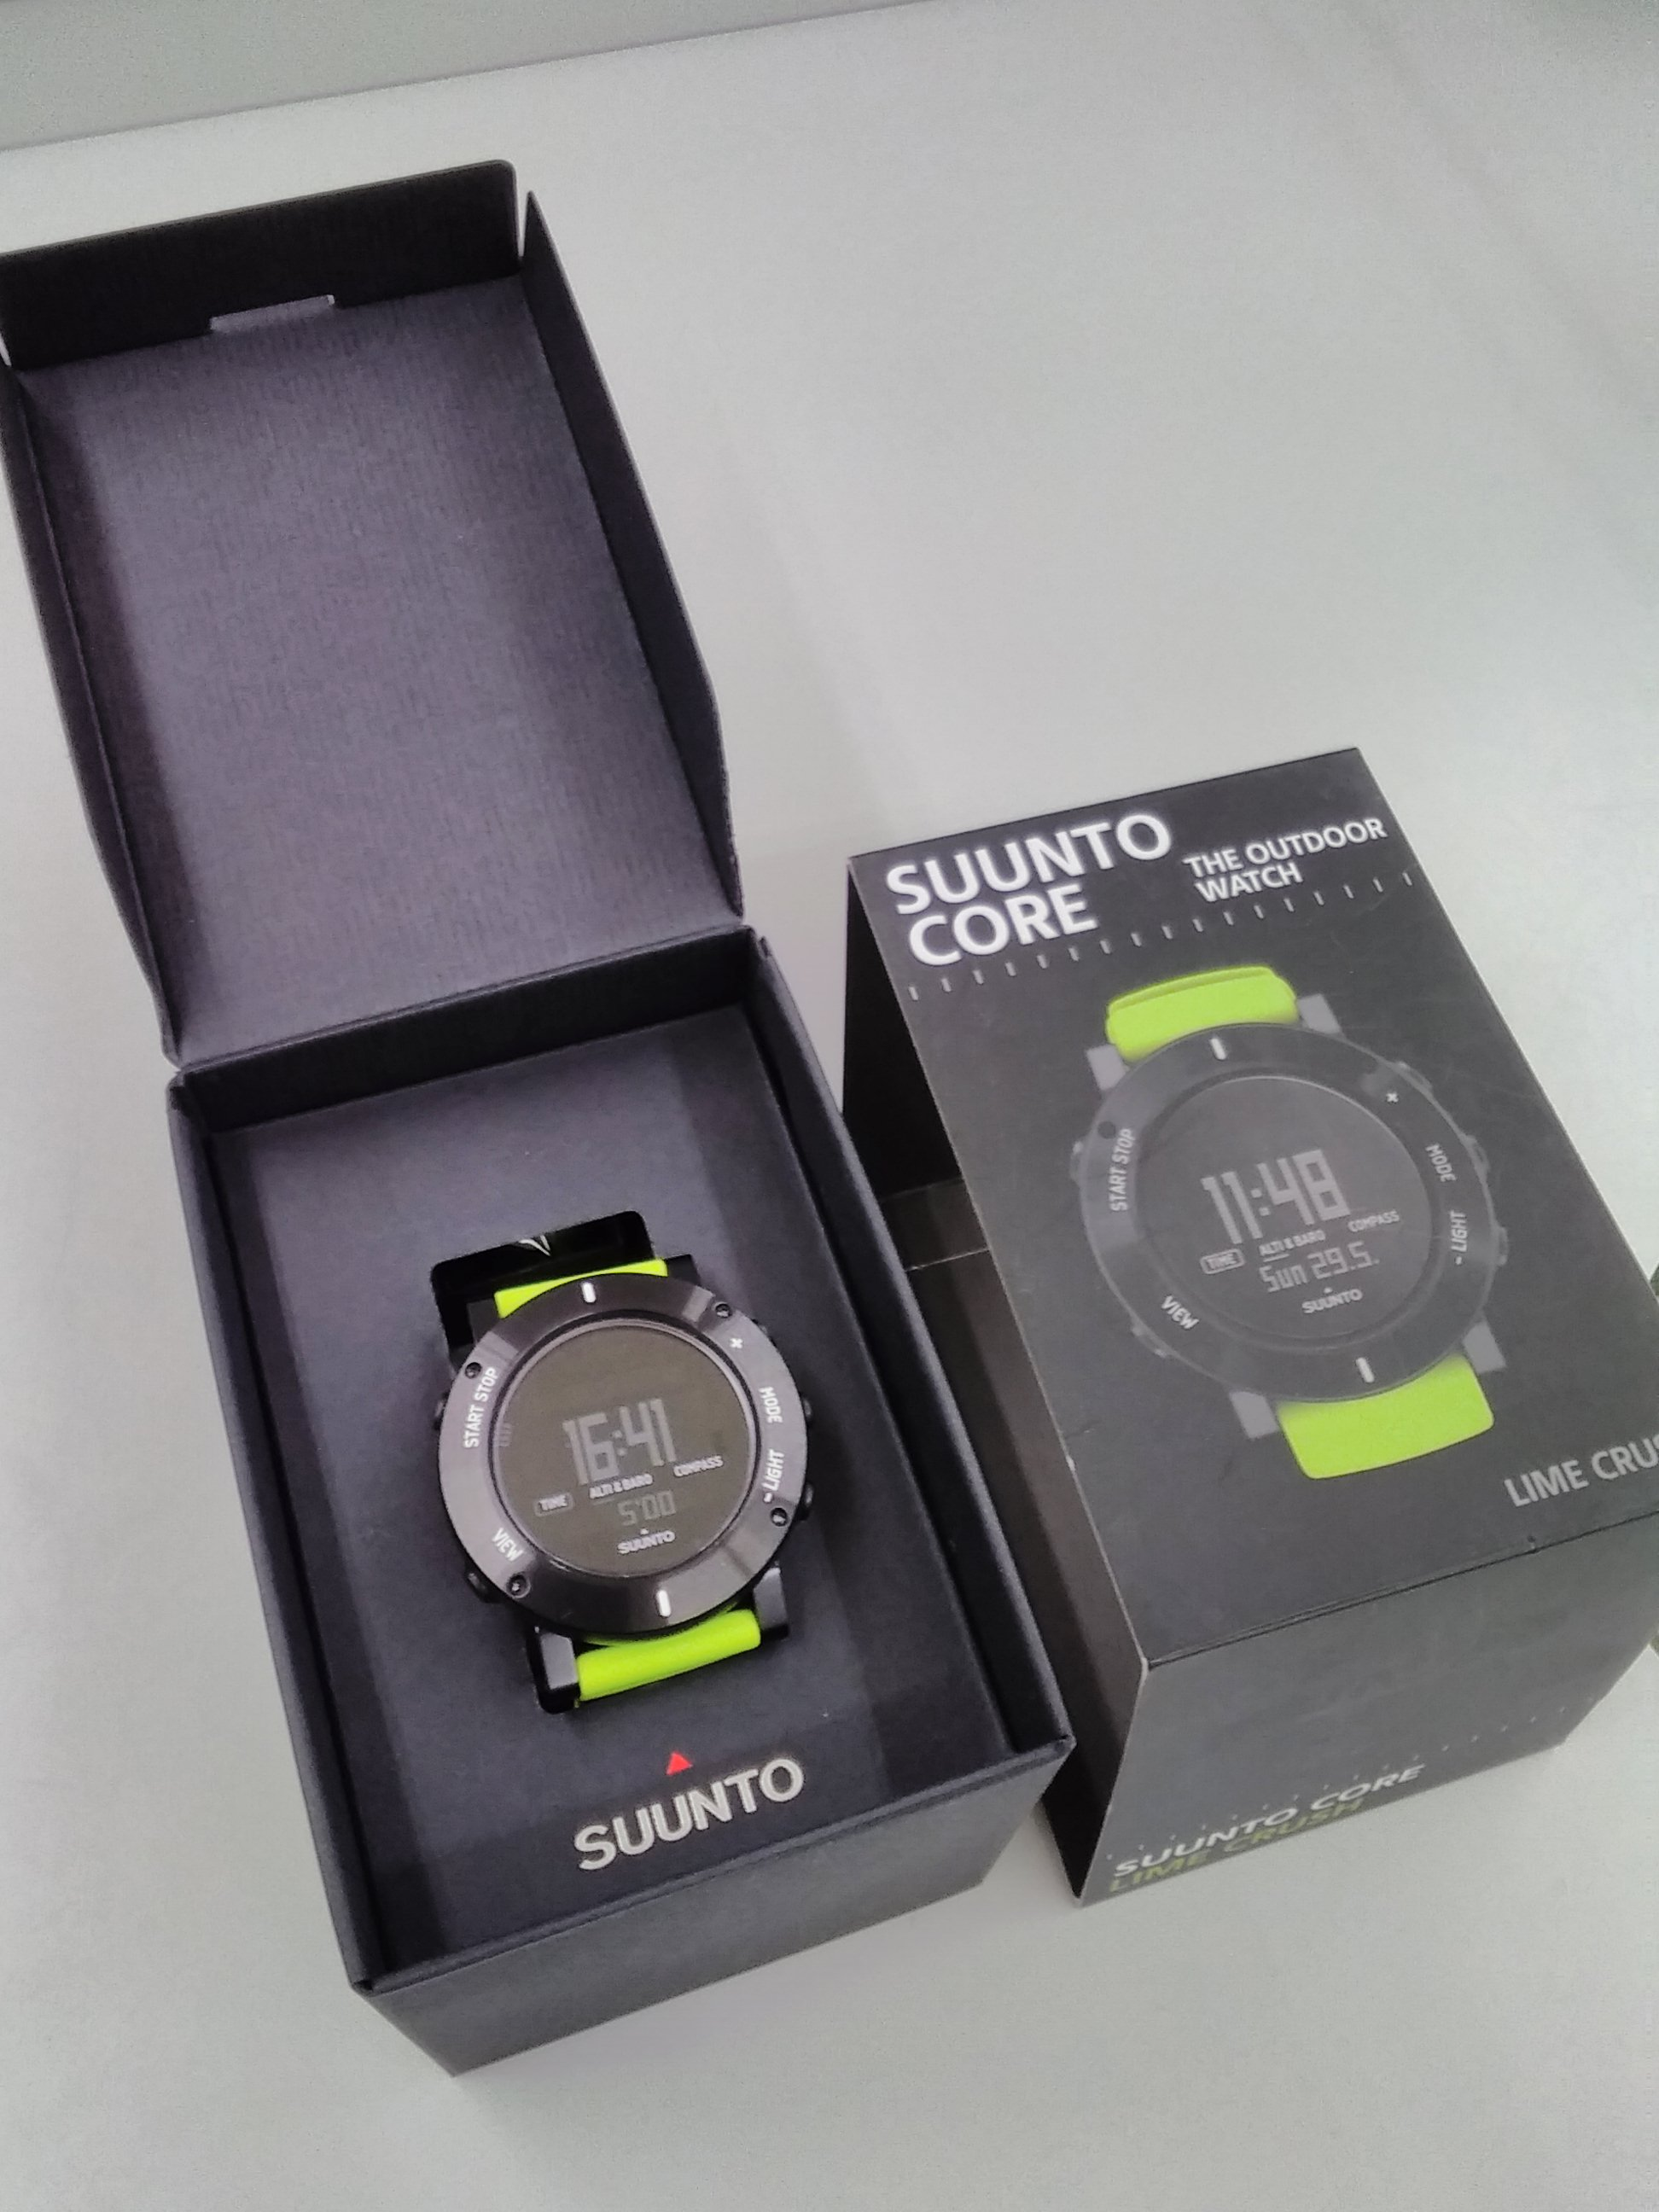 SUUNTO CORE LIME CRUSH|SUUNTO